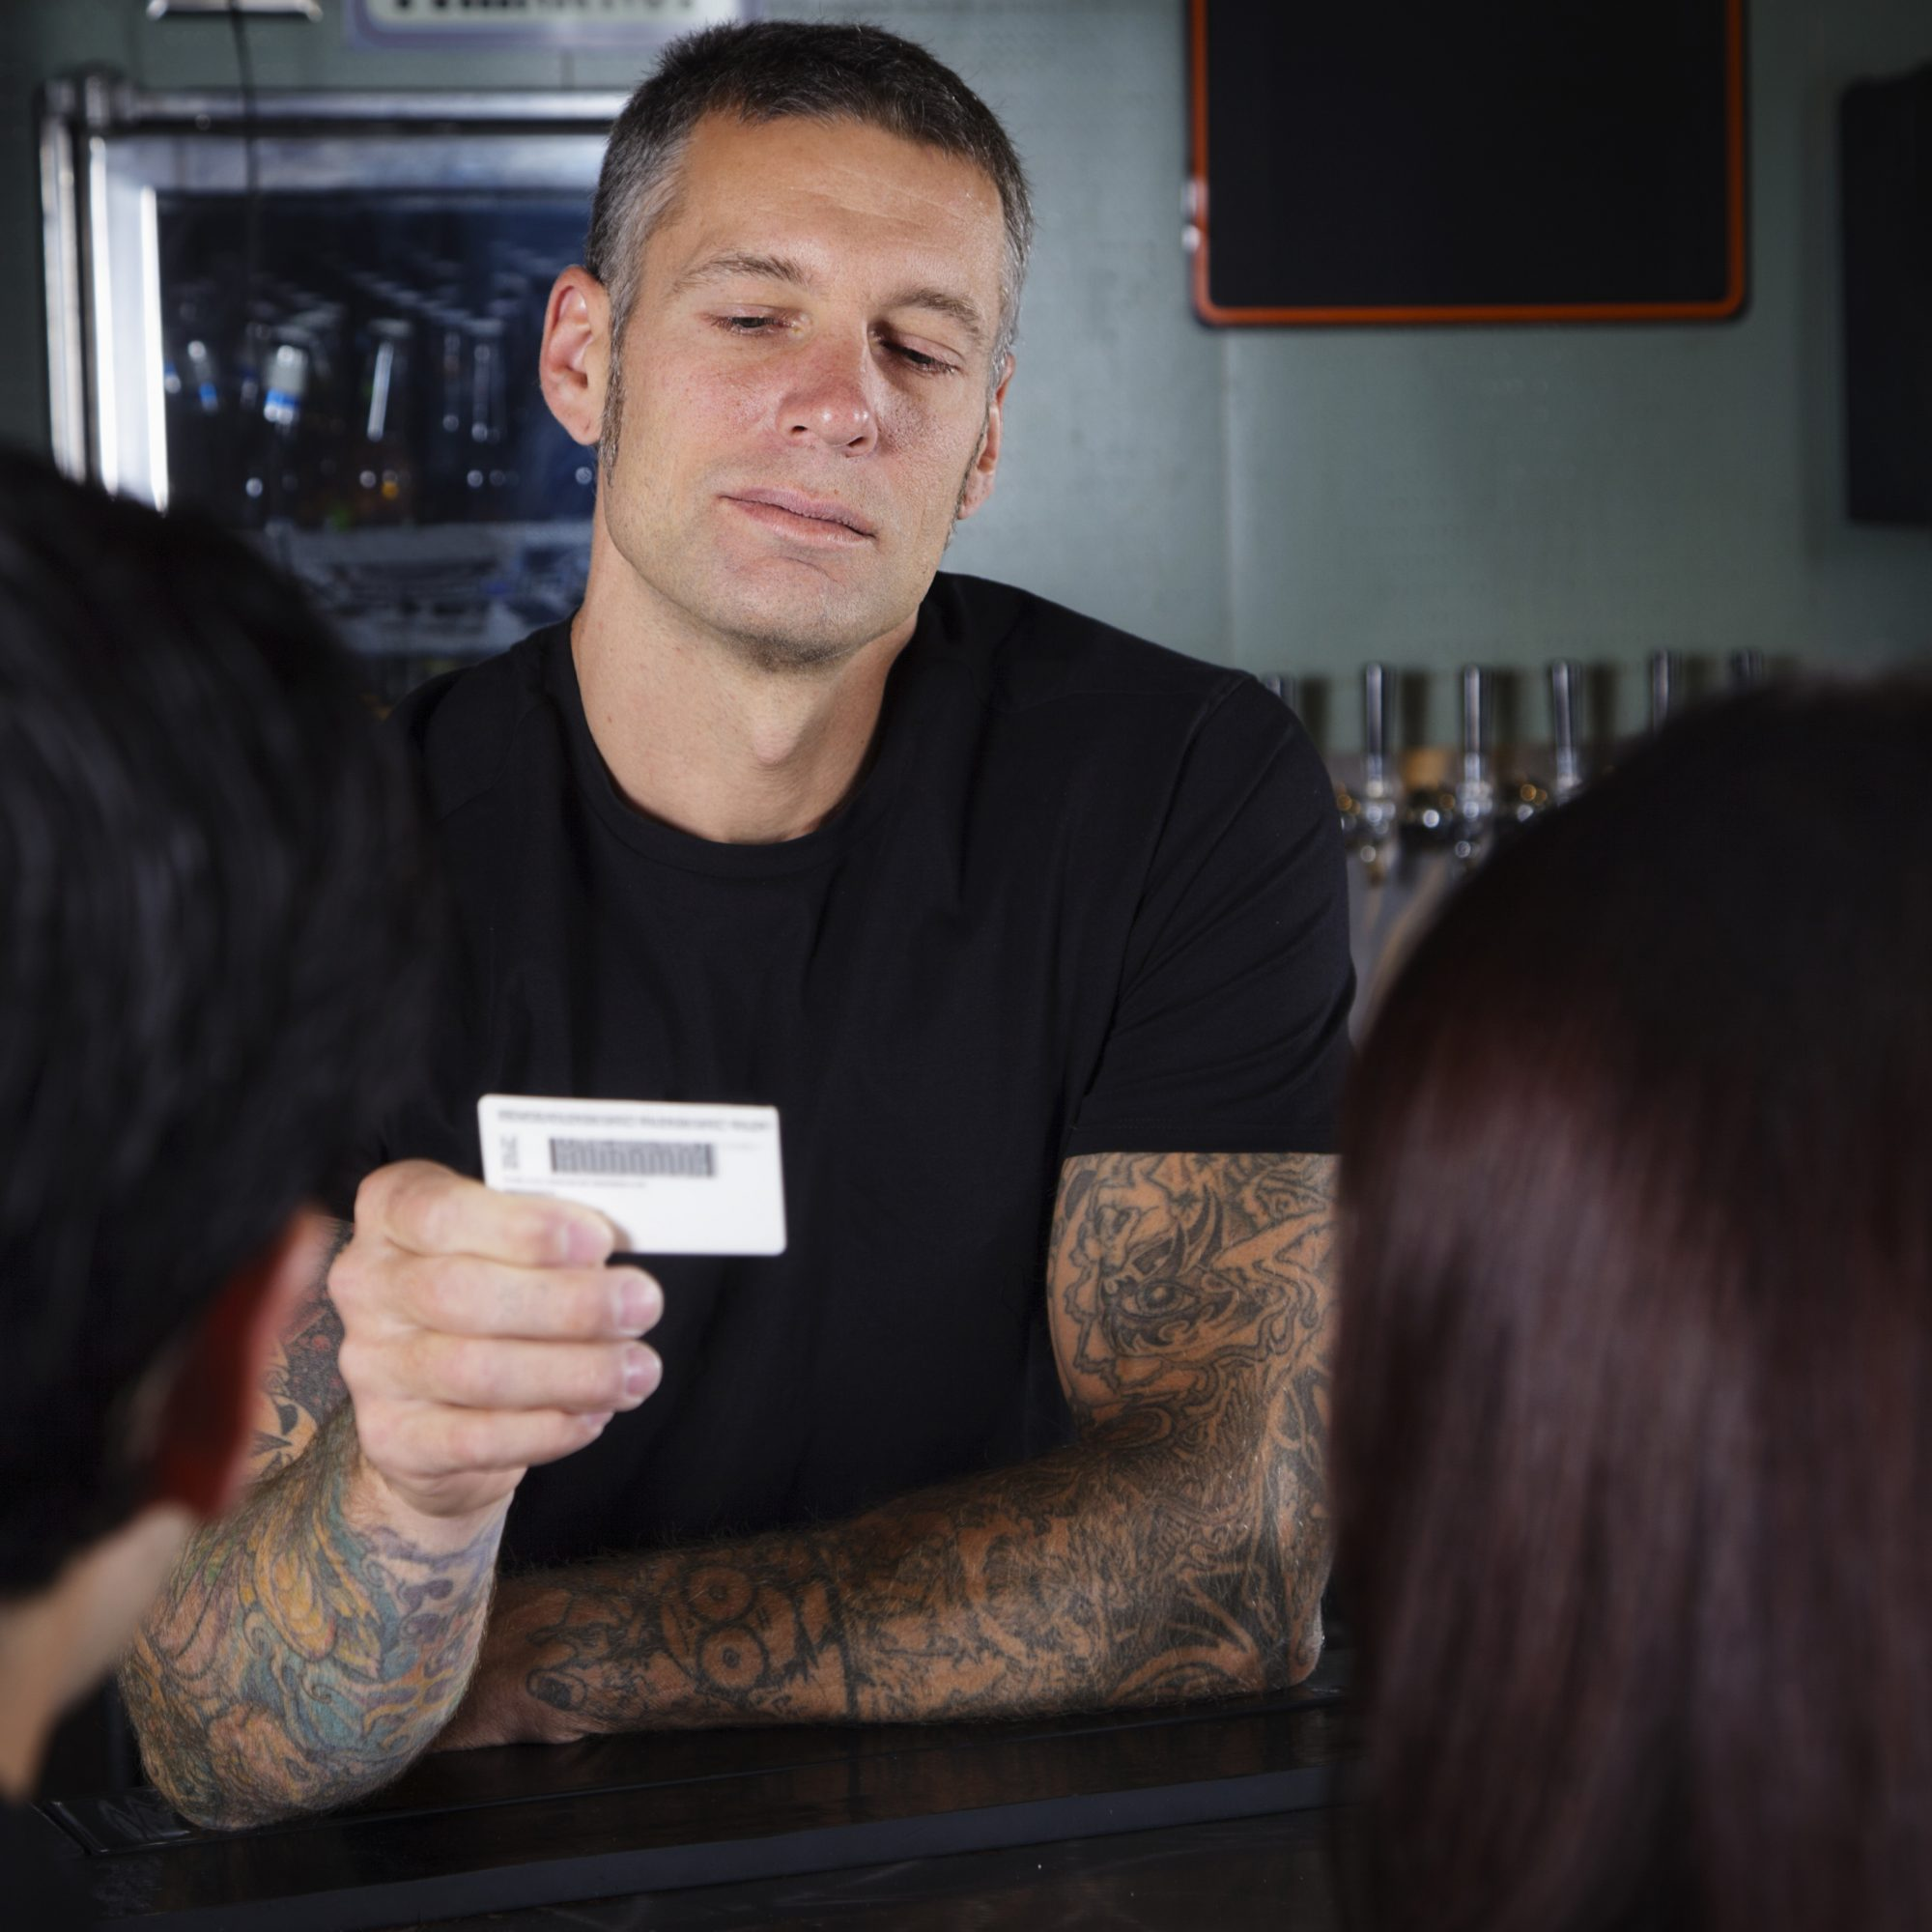 bartender-checking-id-fwx